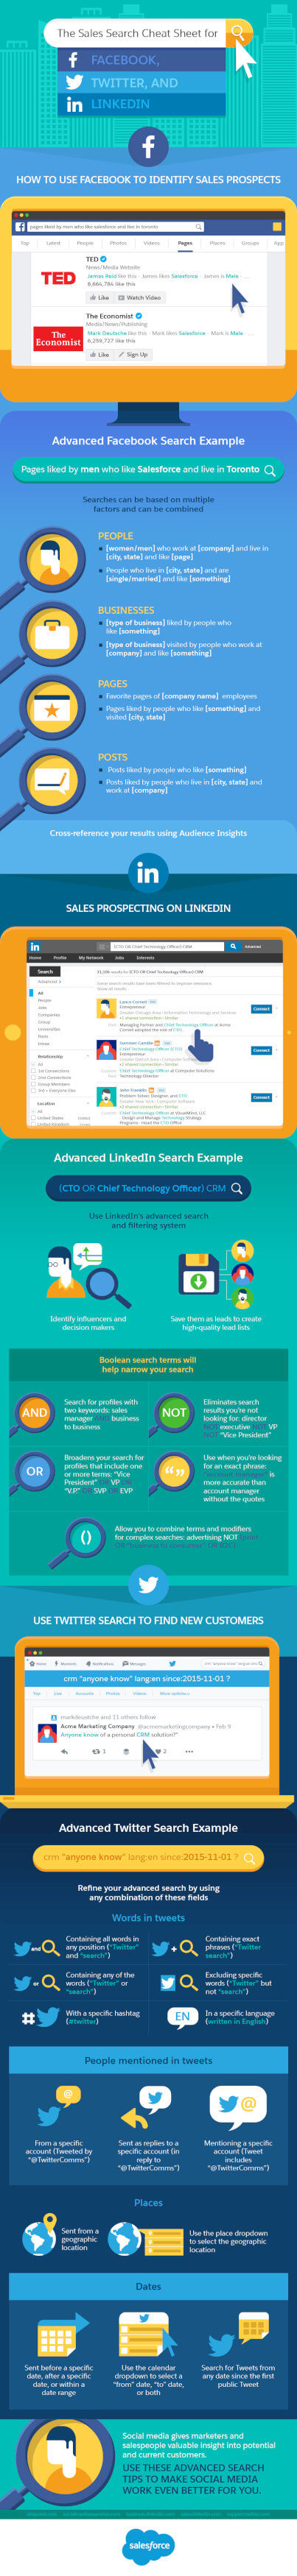 Sales Search Cheat Sheet for LinkedIn, Facebook and Twitter